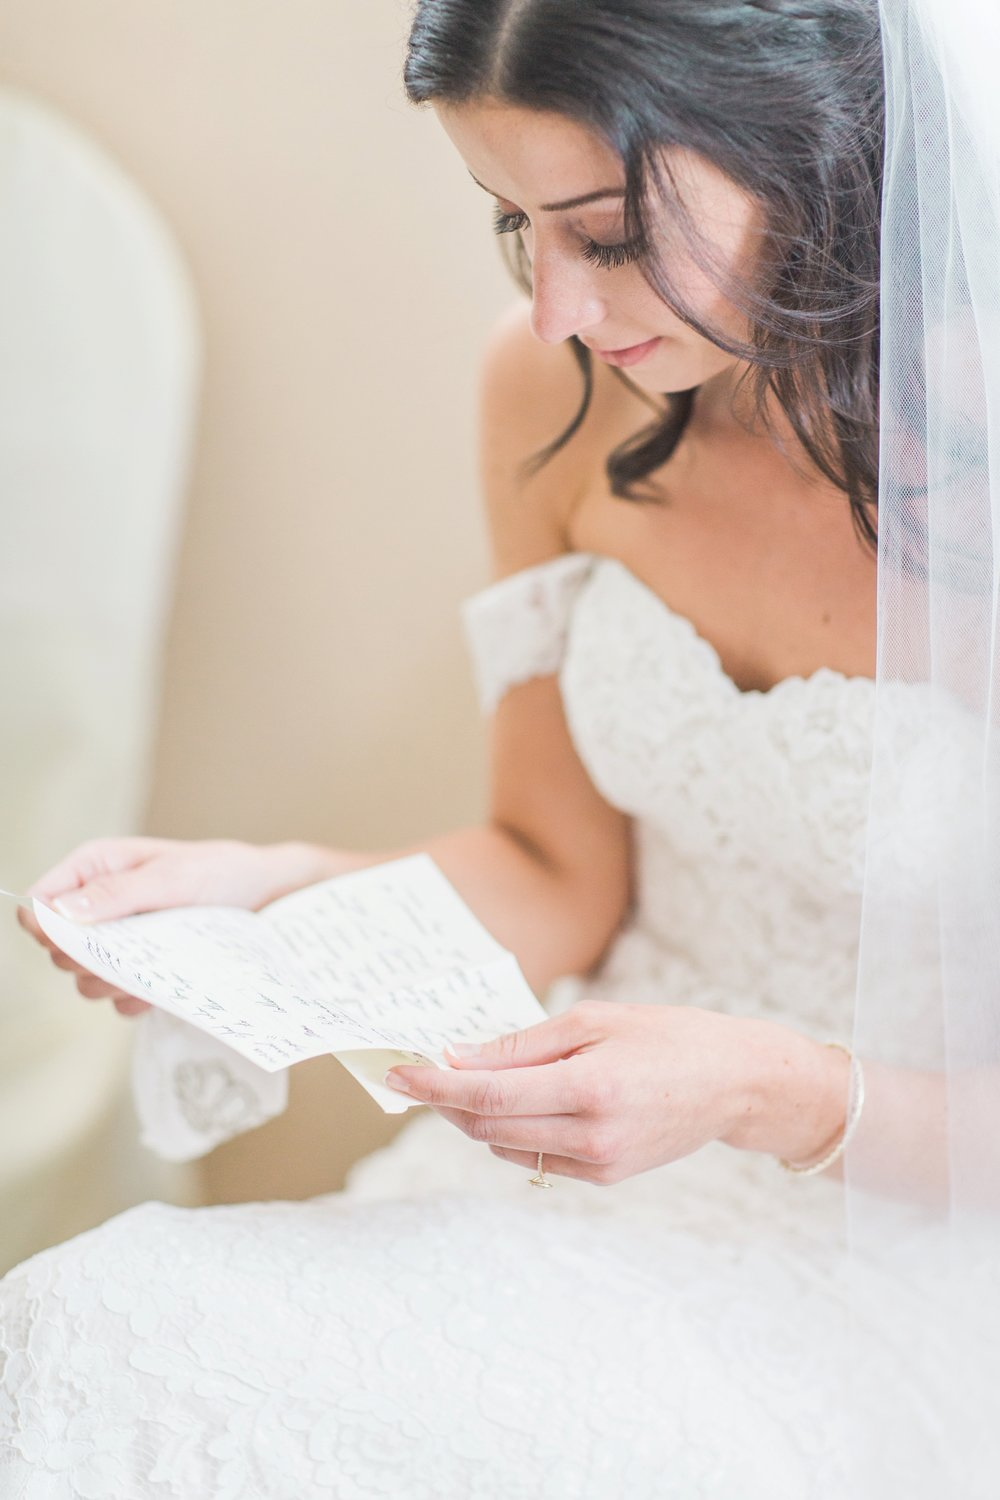 newfields-indianapolis-museum-of-art-wedding-photographer_3937.jpg